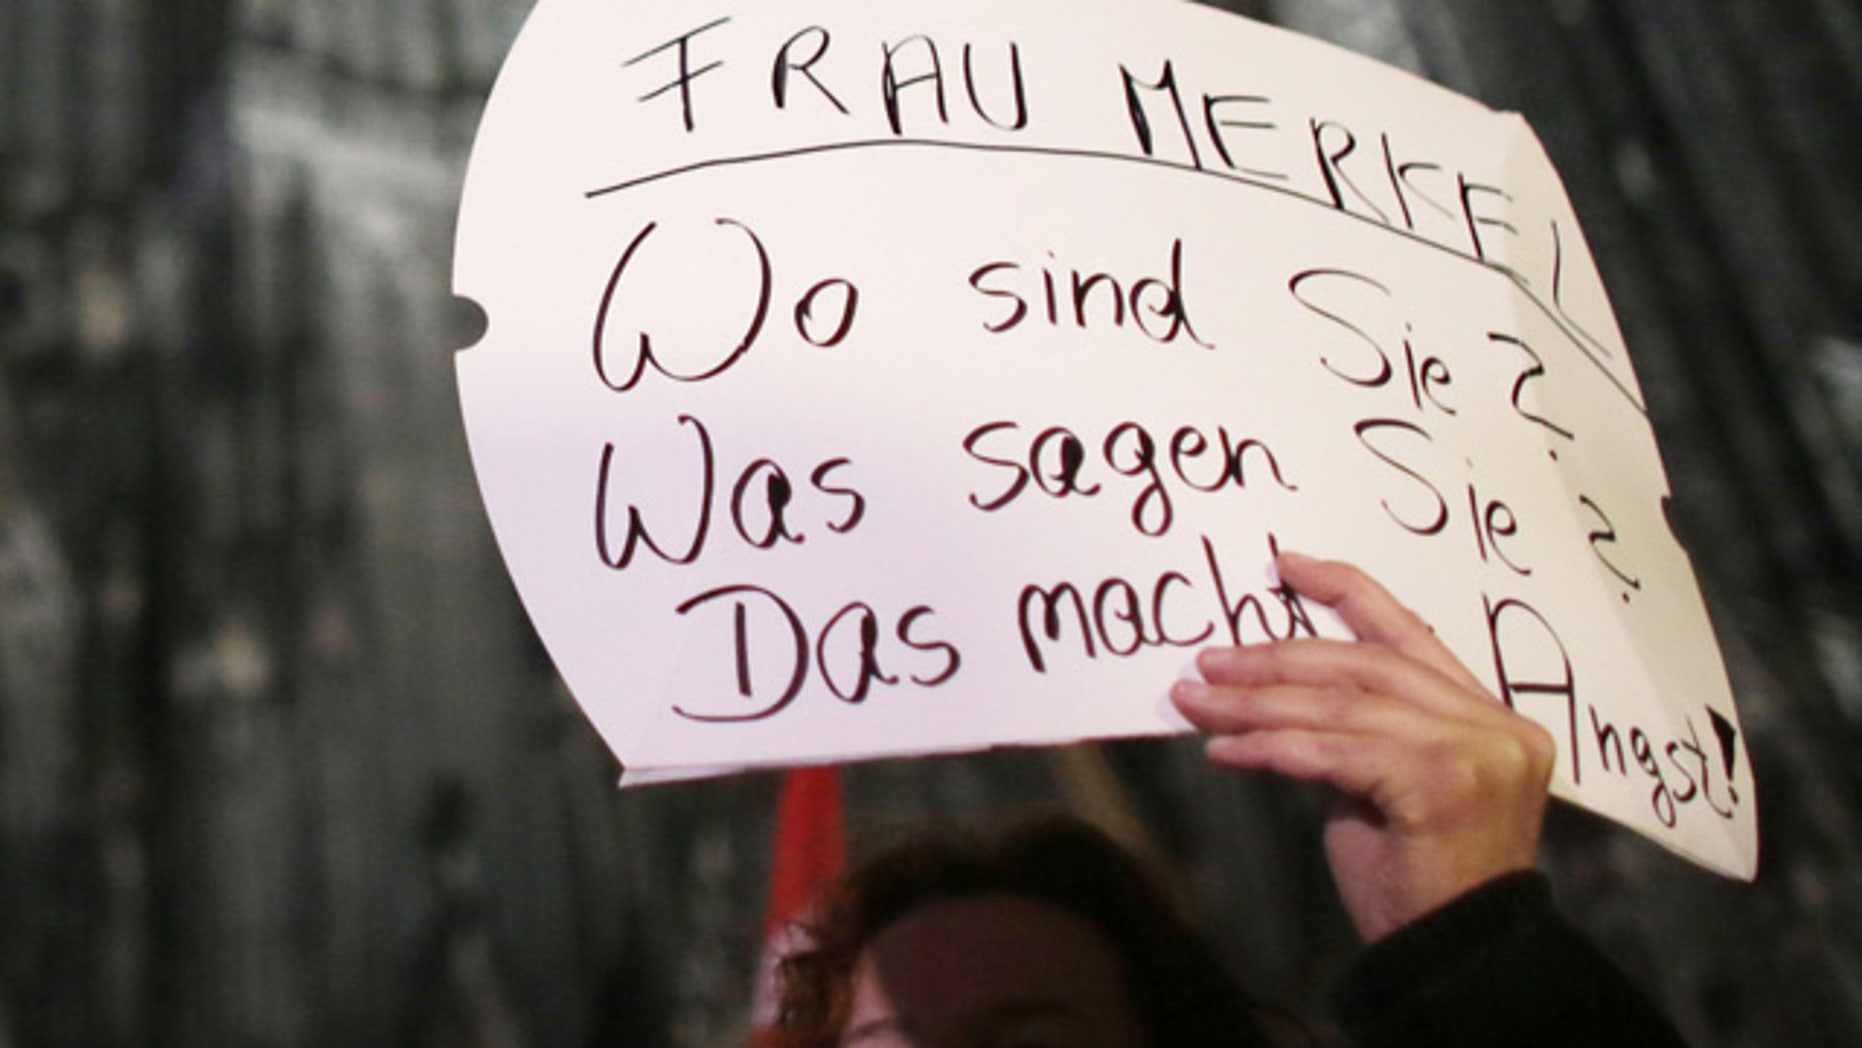 "A woman protests against sexism outside the cathedral in Cologne, Germany, Tuesday Jan. 5, 2016. Poster reads "" Mrs. Merkel. Where are you? What do you say? It's scary."" (Associated Press)"